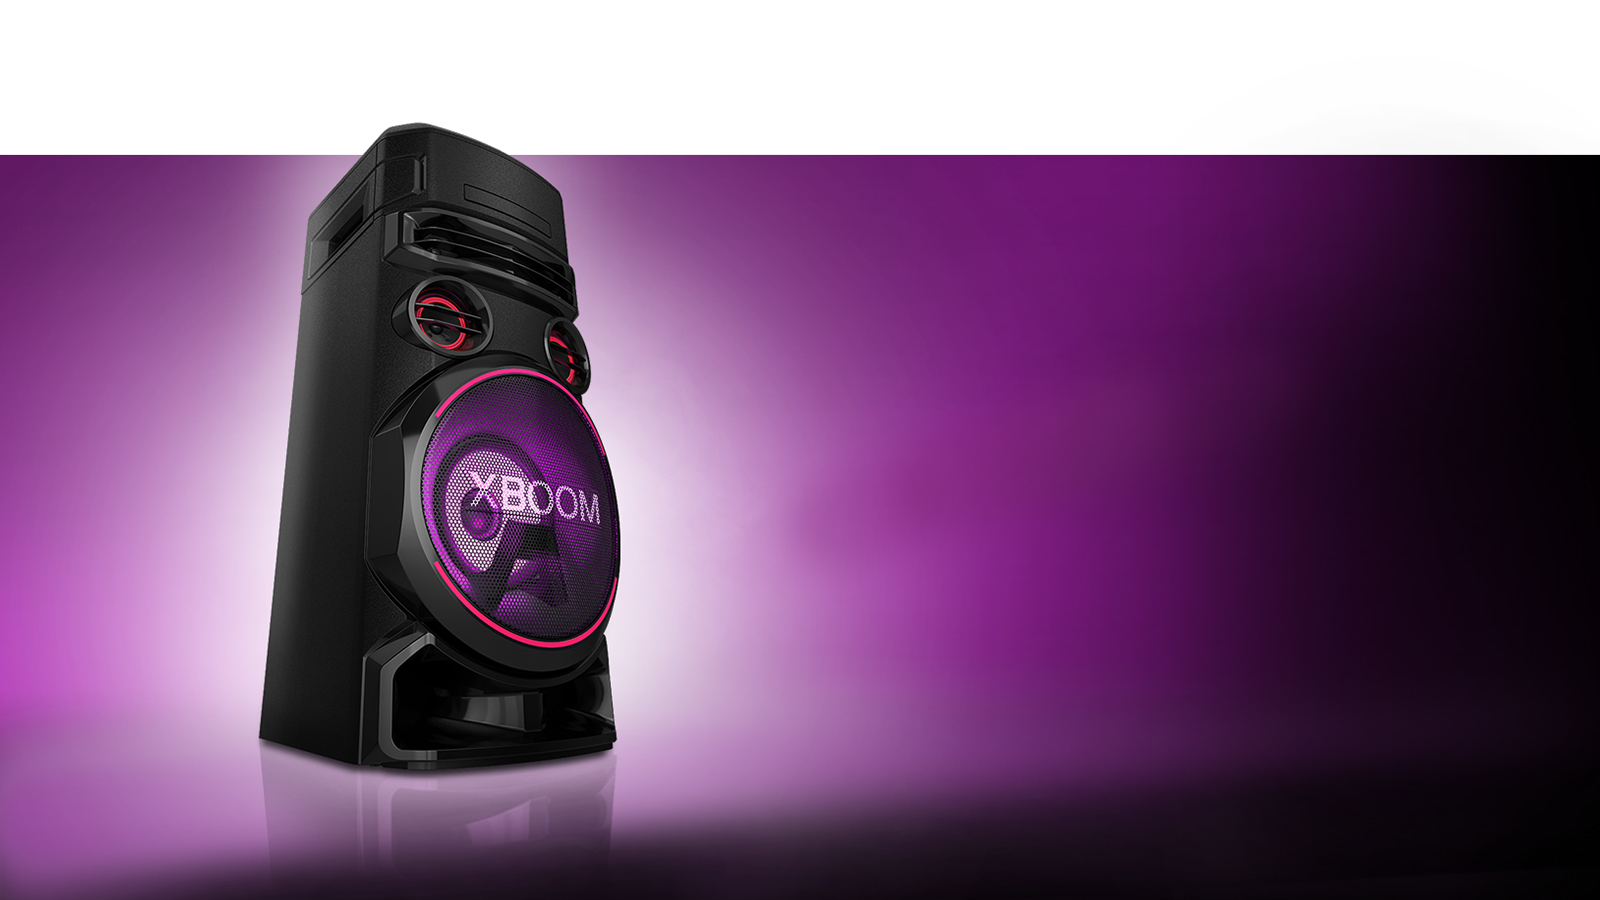 A low angle view of the left side of LG XBOOM against a purple background.  The XBOOM light are also purple.